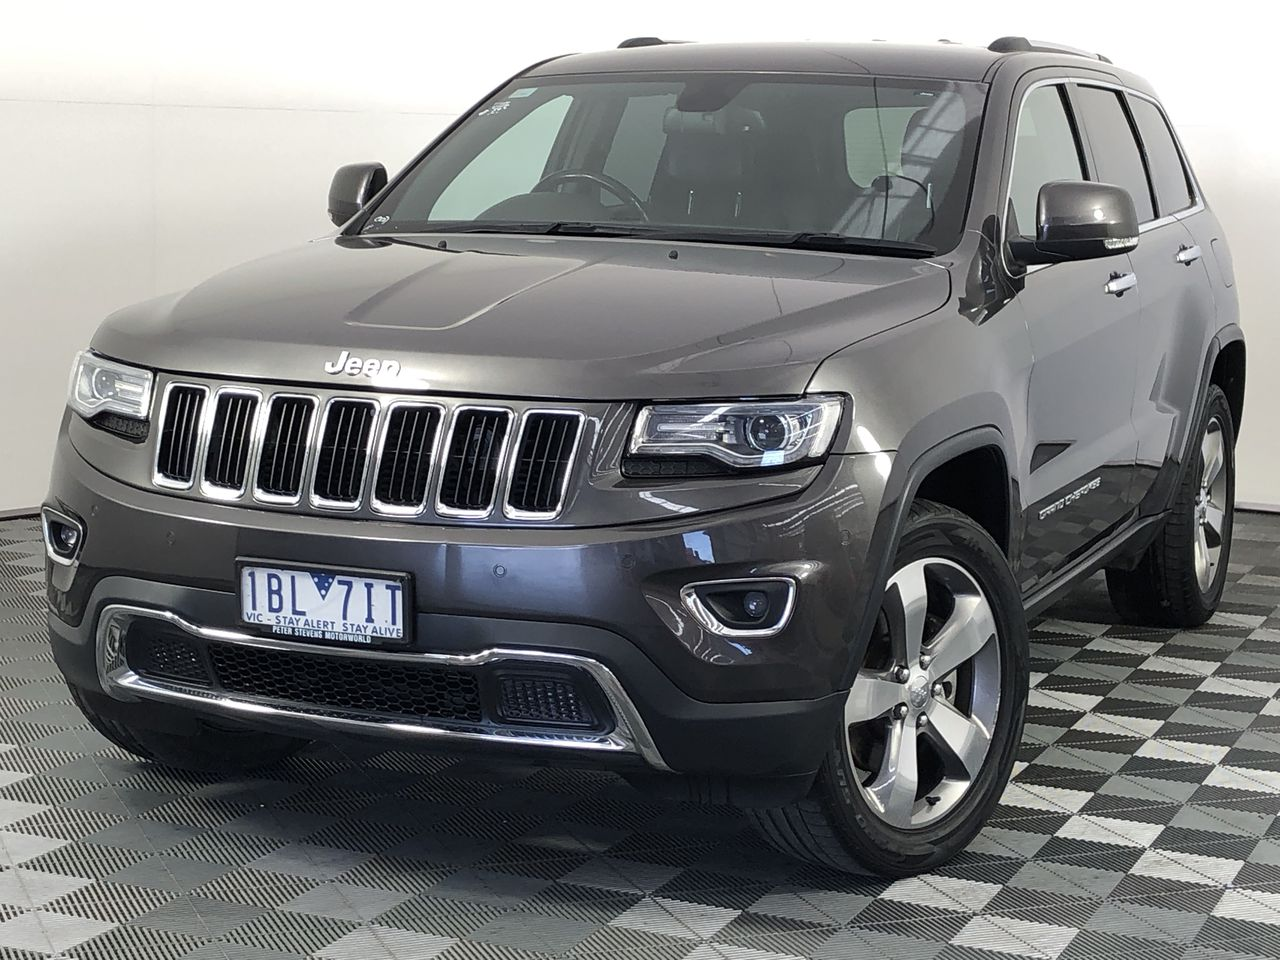 2013 Jeep Grand Cherokee Limited WK Turbo Diesel Automatic - 8 Speed Wagon